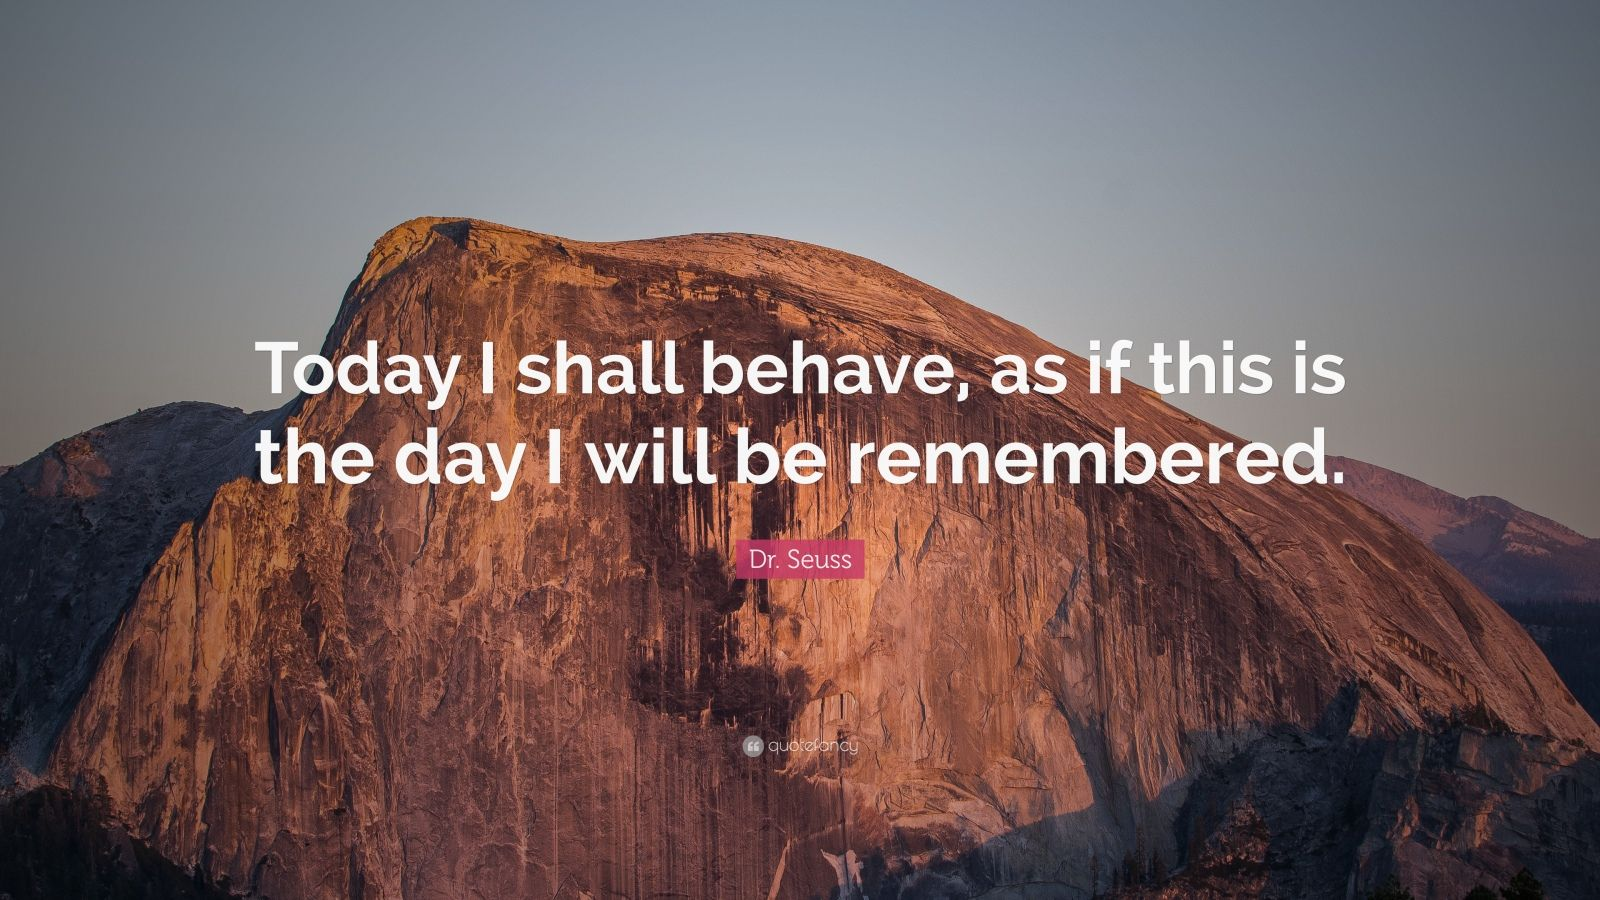 Dalai Lama Wallpaper Quotes Dr Seuss Quote Today I Shall Behave As If This Is The